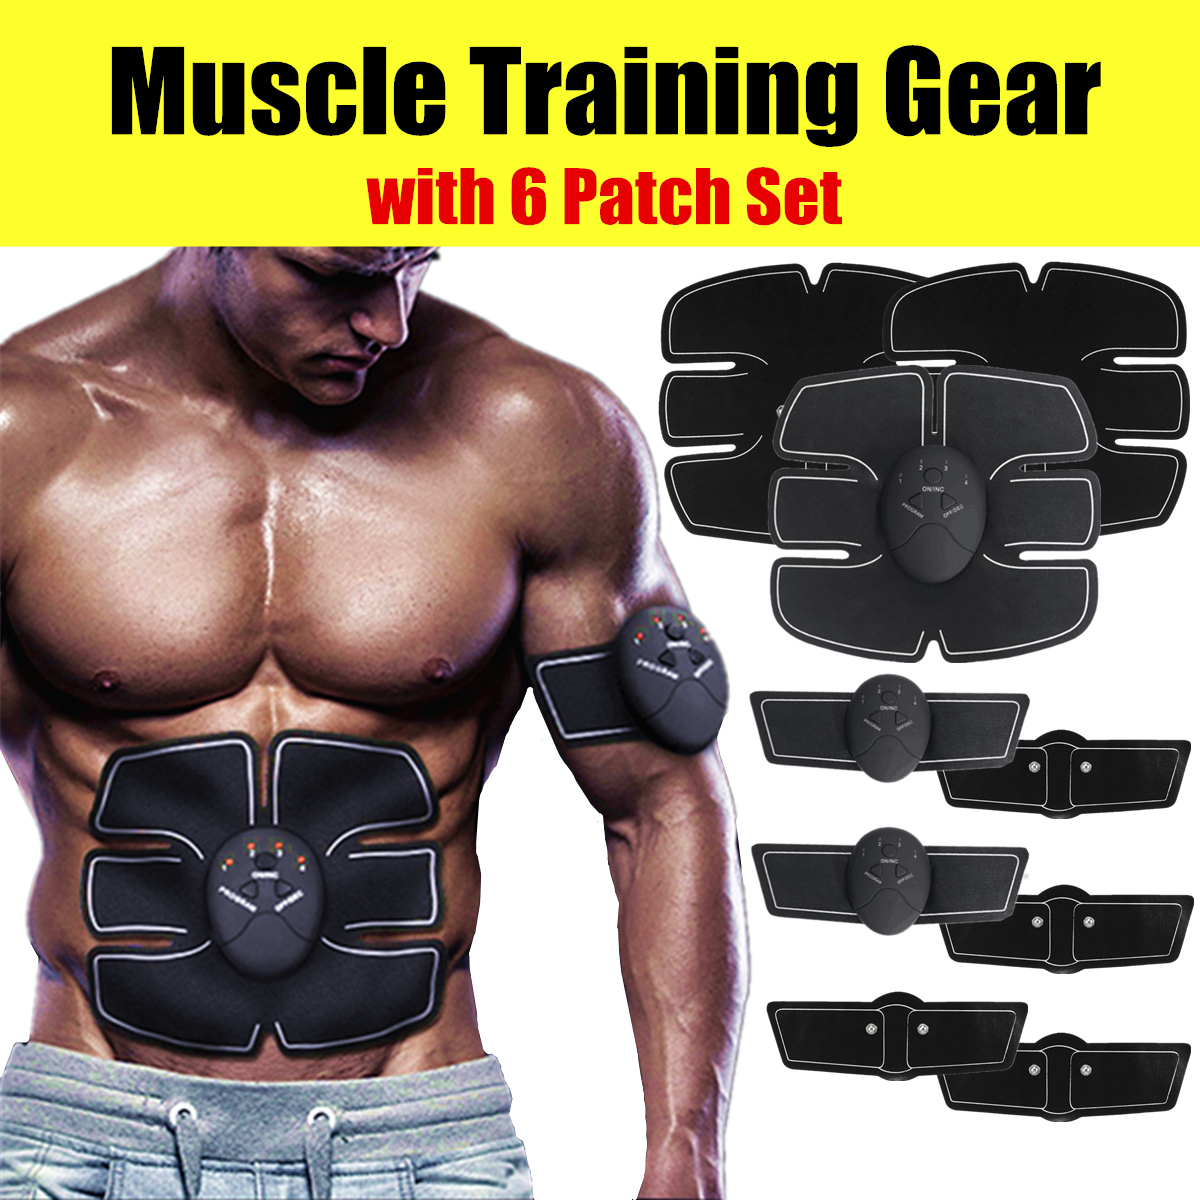 Electric Abdominal Toning Belt Muscle Trainer ABS Stimulator Smart Body Building Fitness For Abdomen/Arm/Leg/Hip Training